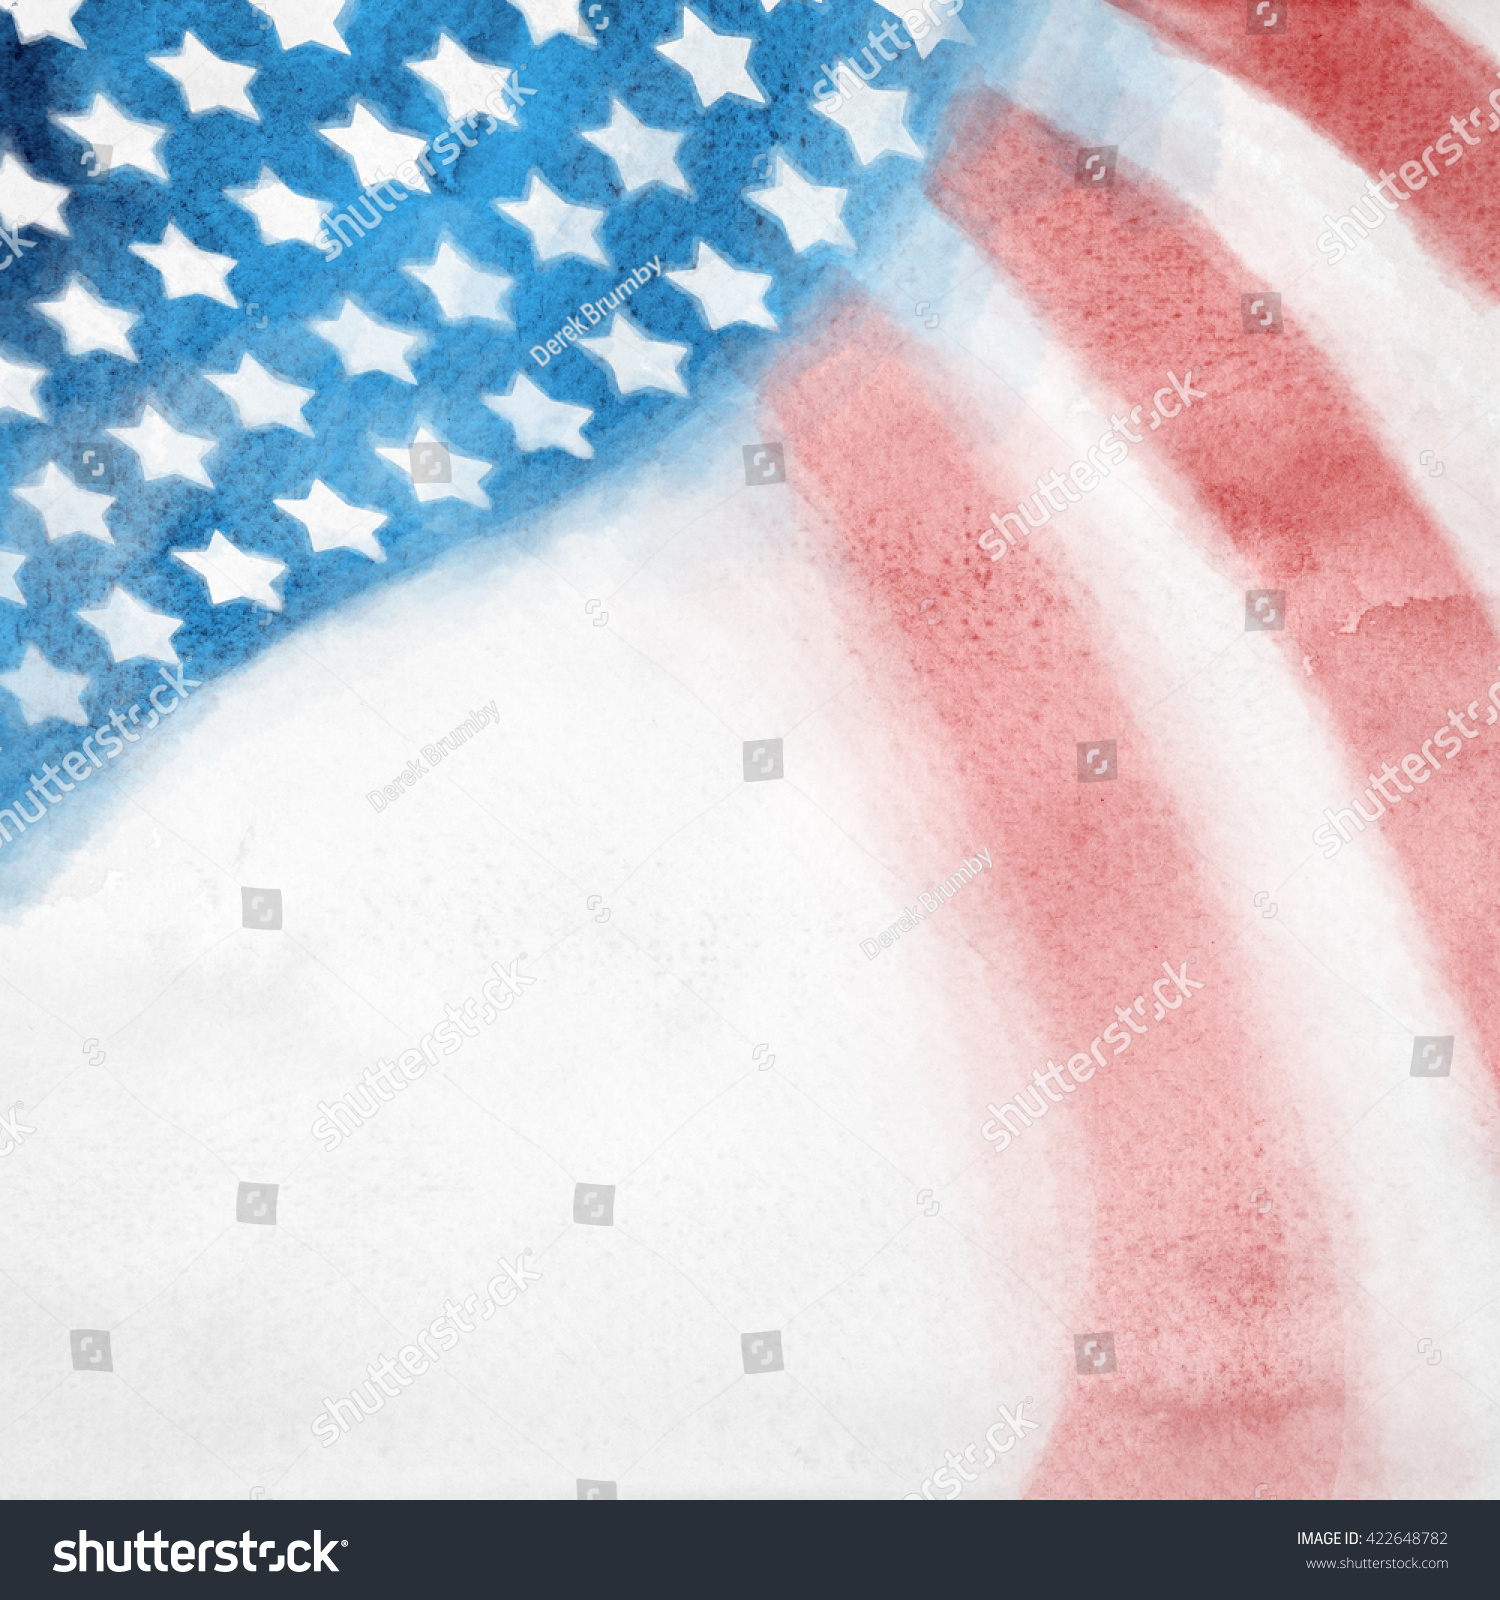 patriotic red white blue watercolor texture stock illustration 422648782 https www shutterstock com image illustration patriotic red white blue watercolor texture 422648782